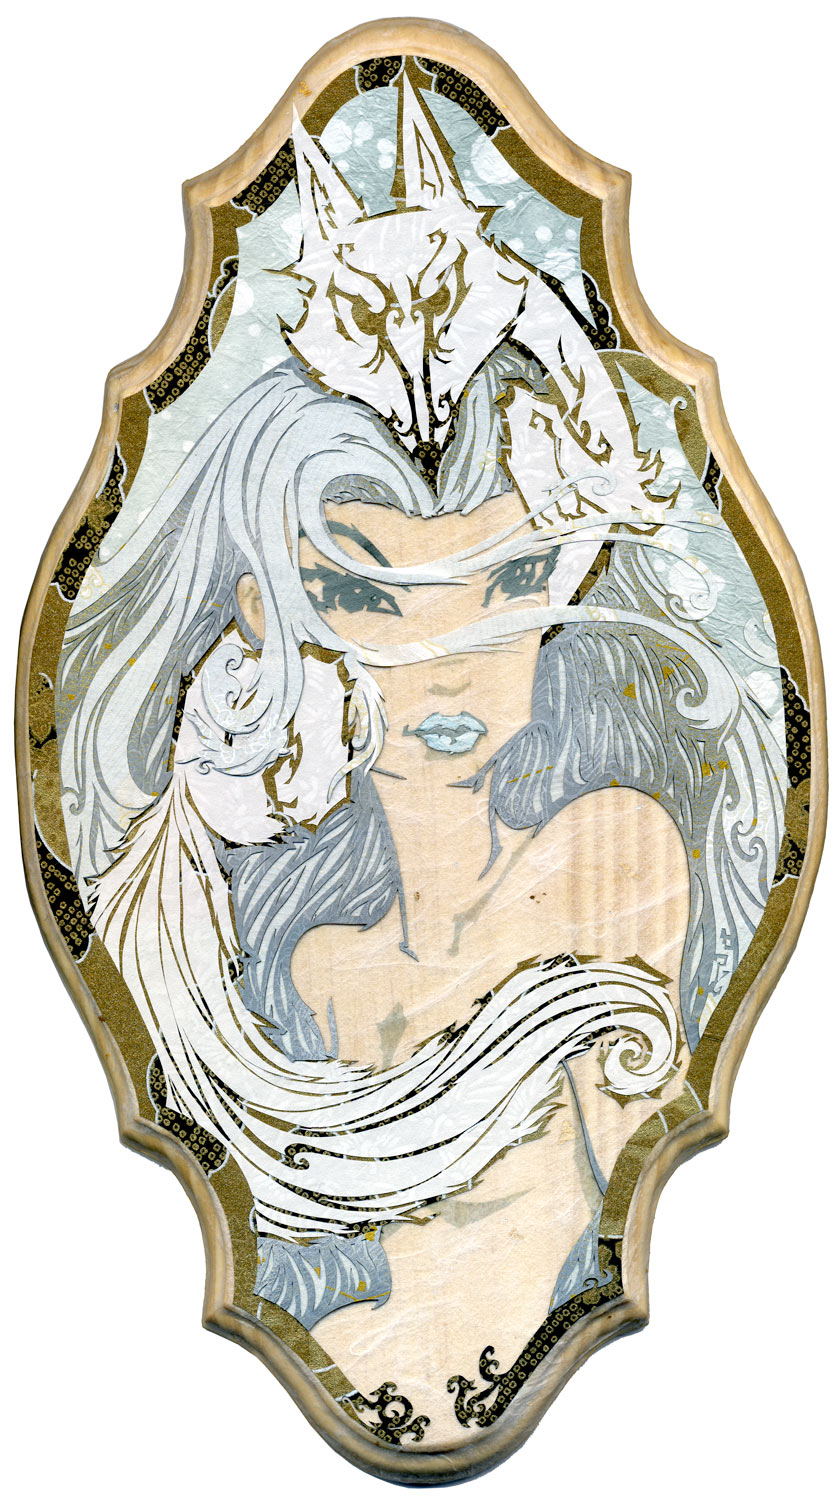 ⊛Cold as the Winter Wind, Sharp as a Fox (Yuki-Onna) ⊛size: 15 x 8.5 in • 381 x 216 mm ⊛medium: cut paper / wood  ⊛private collection